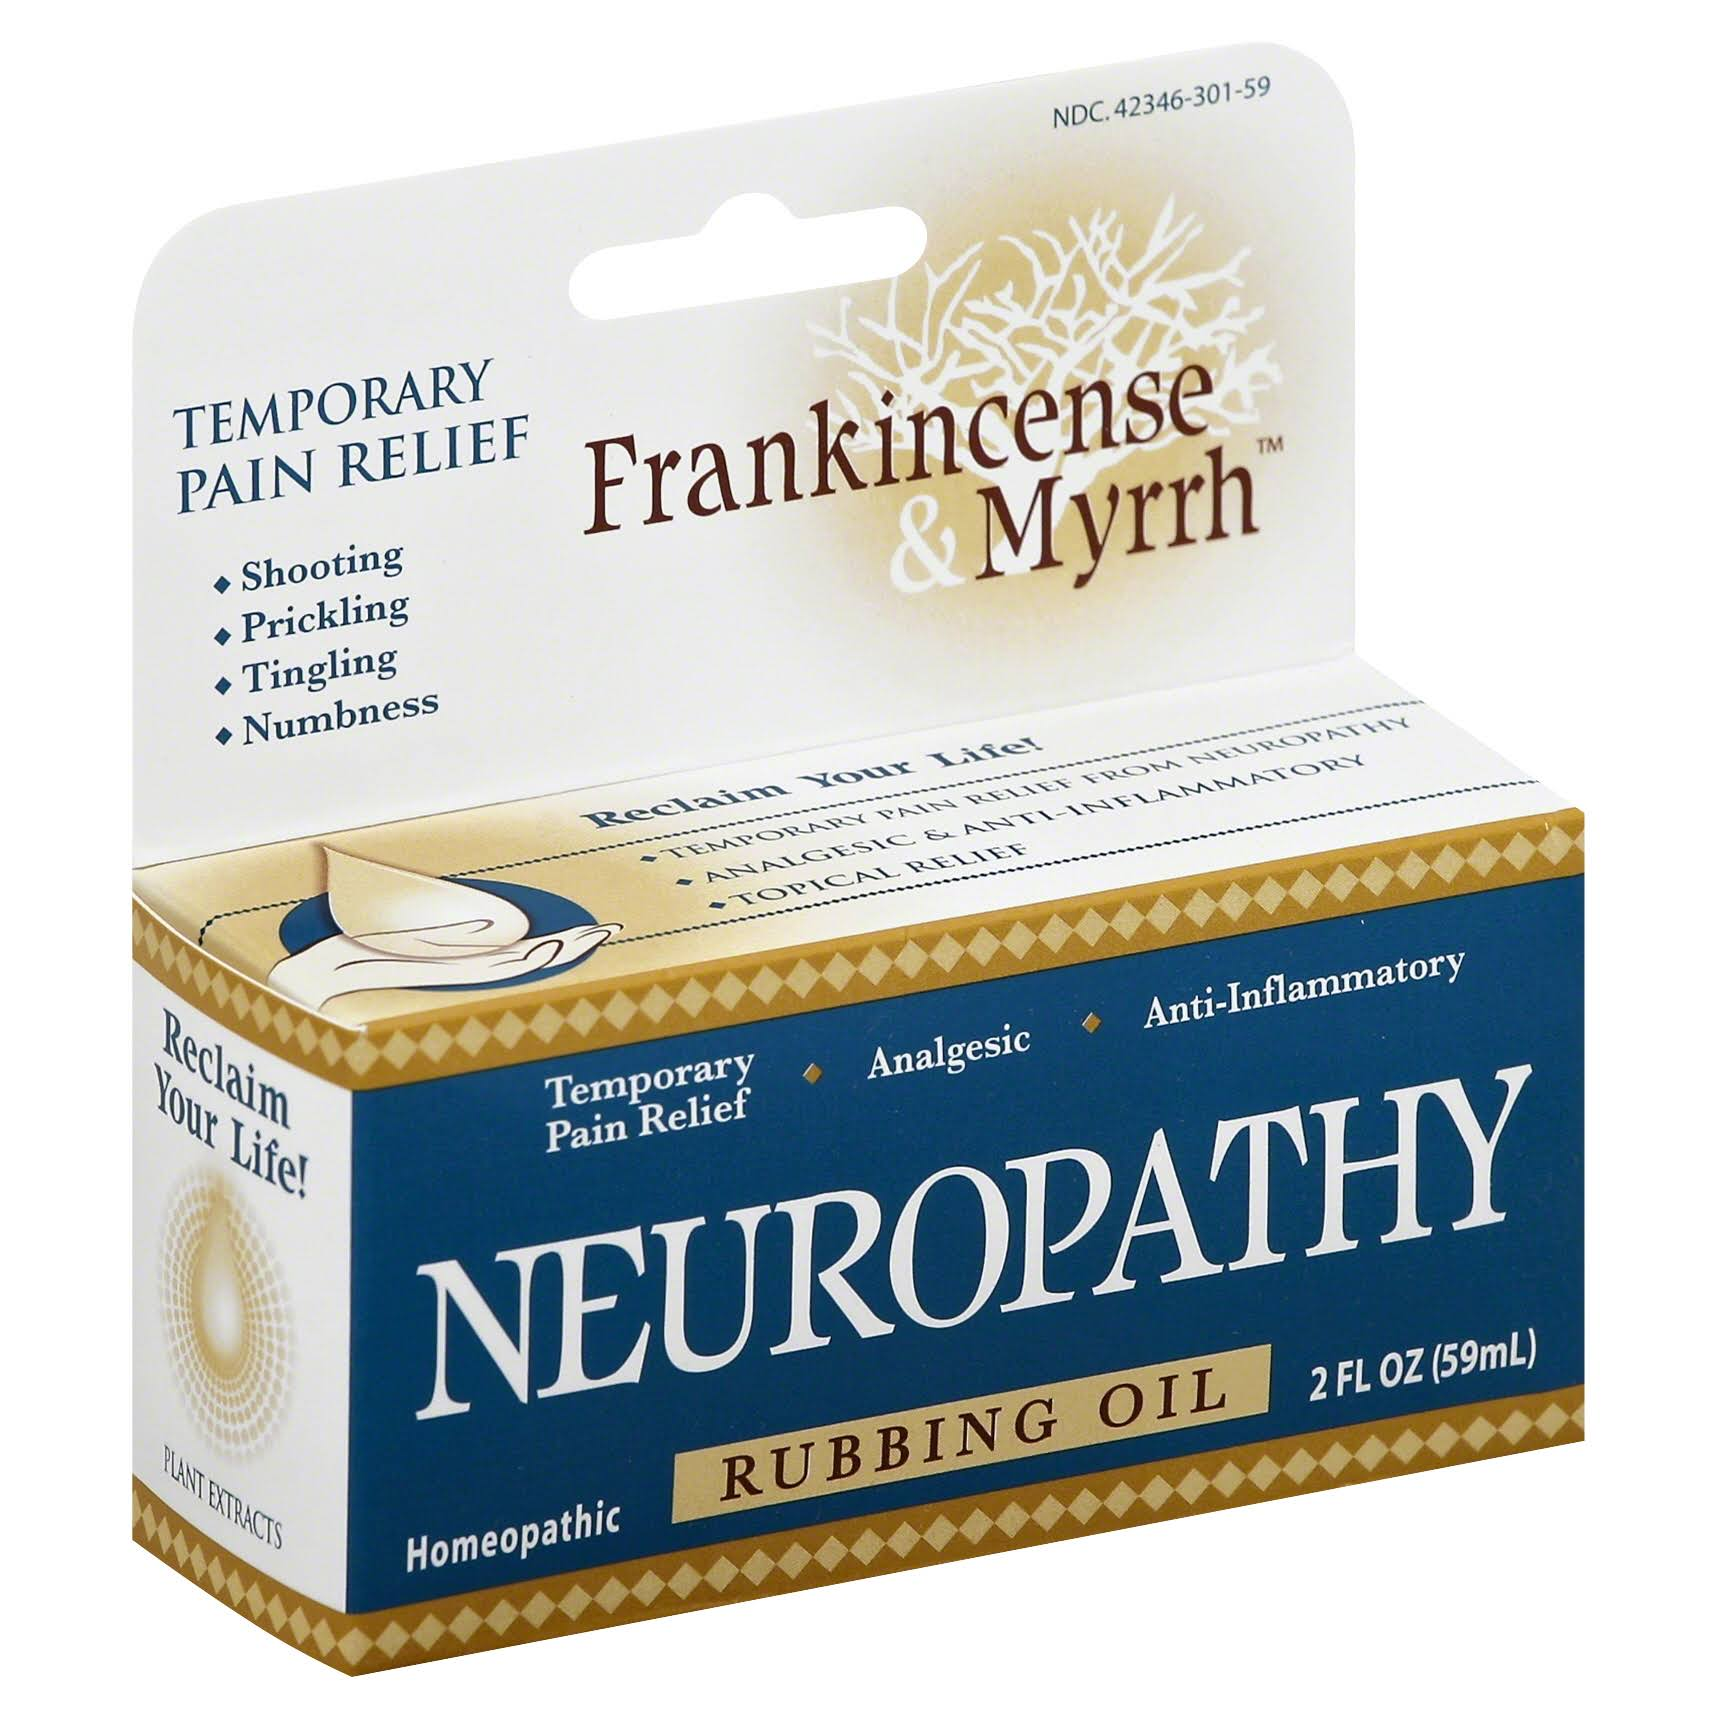 Frankincense & Myrrh Neuropathy Rubbing Oil - 2oz